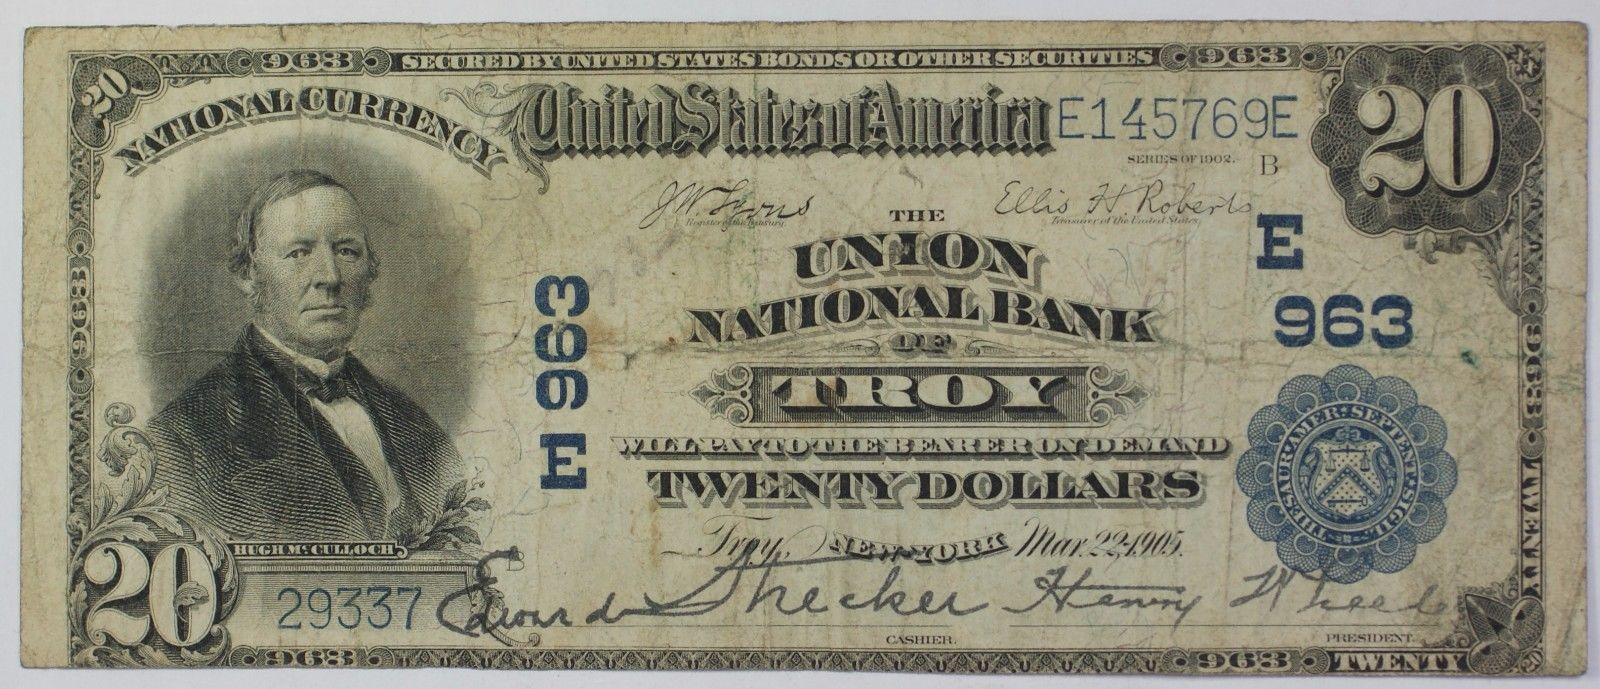 1905 20 National Currency Large Size Banknote Troy New York Charter E963 Ebay Bank Notes Kentucky Money Collection